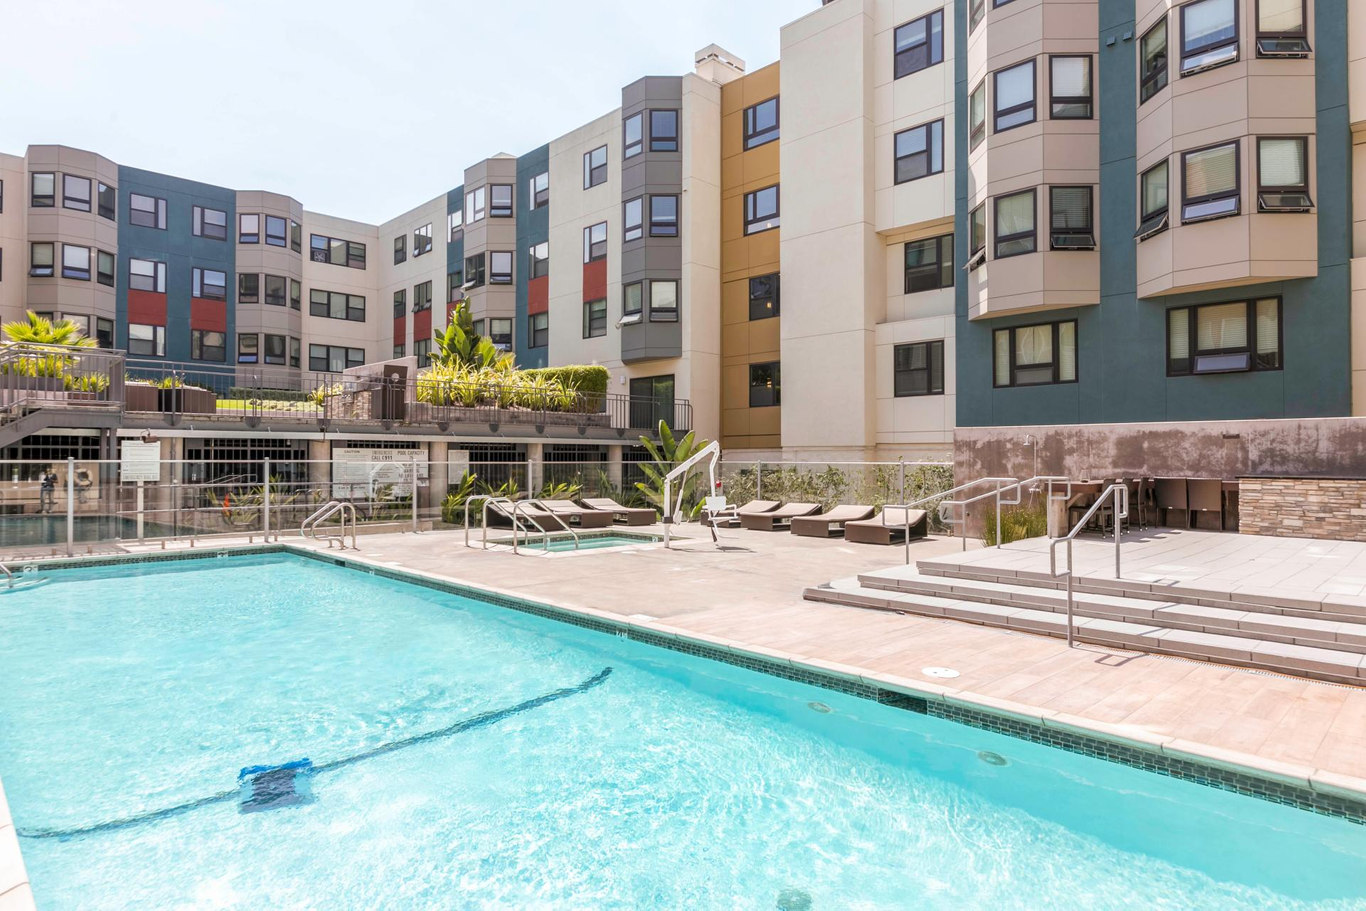 Pool at 2000 Post Street Apartments - Citybase Apartments